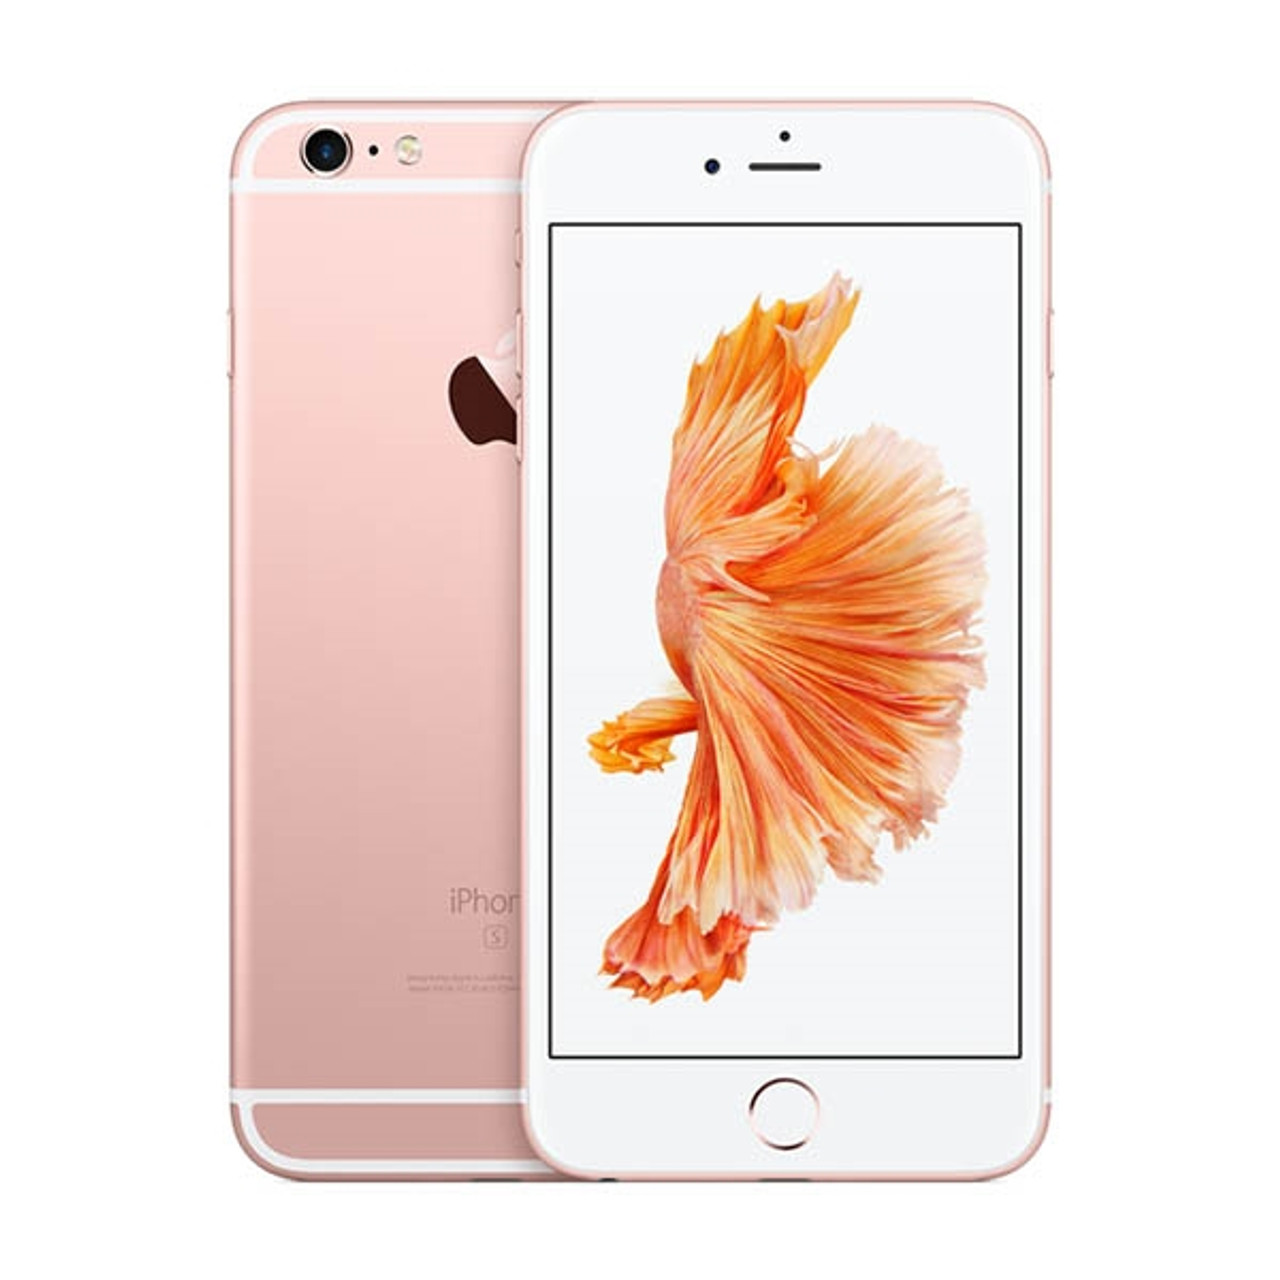 iPhone 6s Plus (AT&T) 128GB Rose Gold   mac of all trades